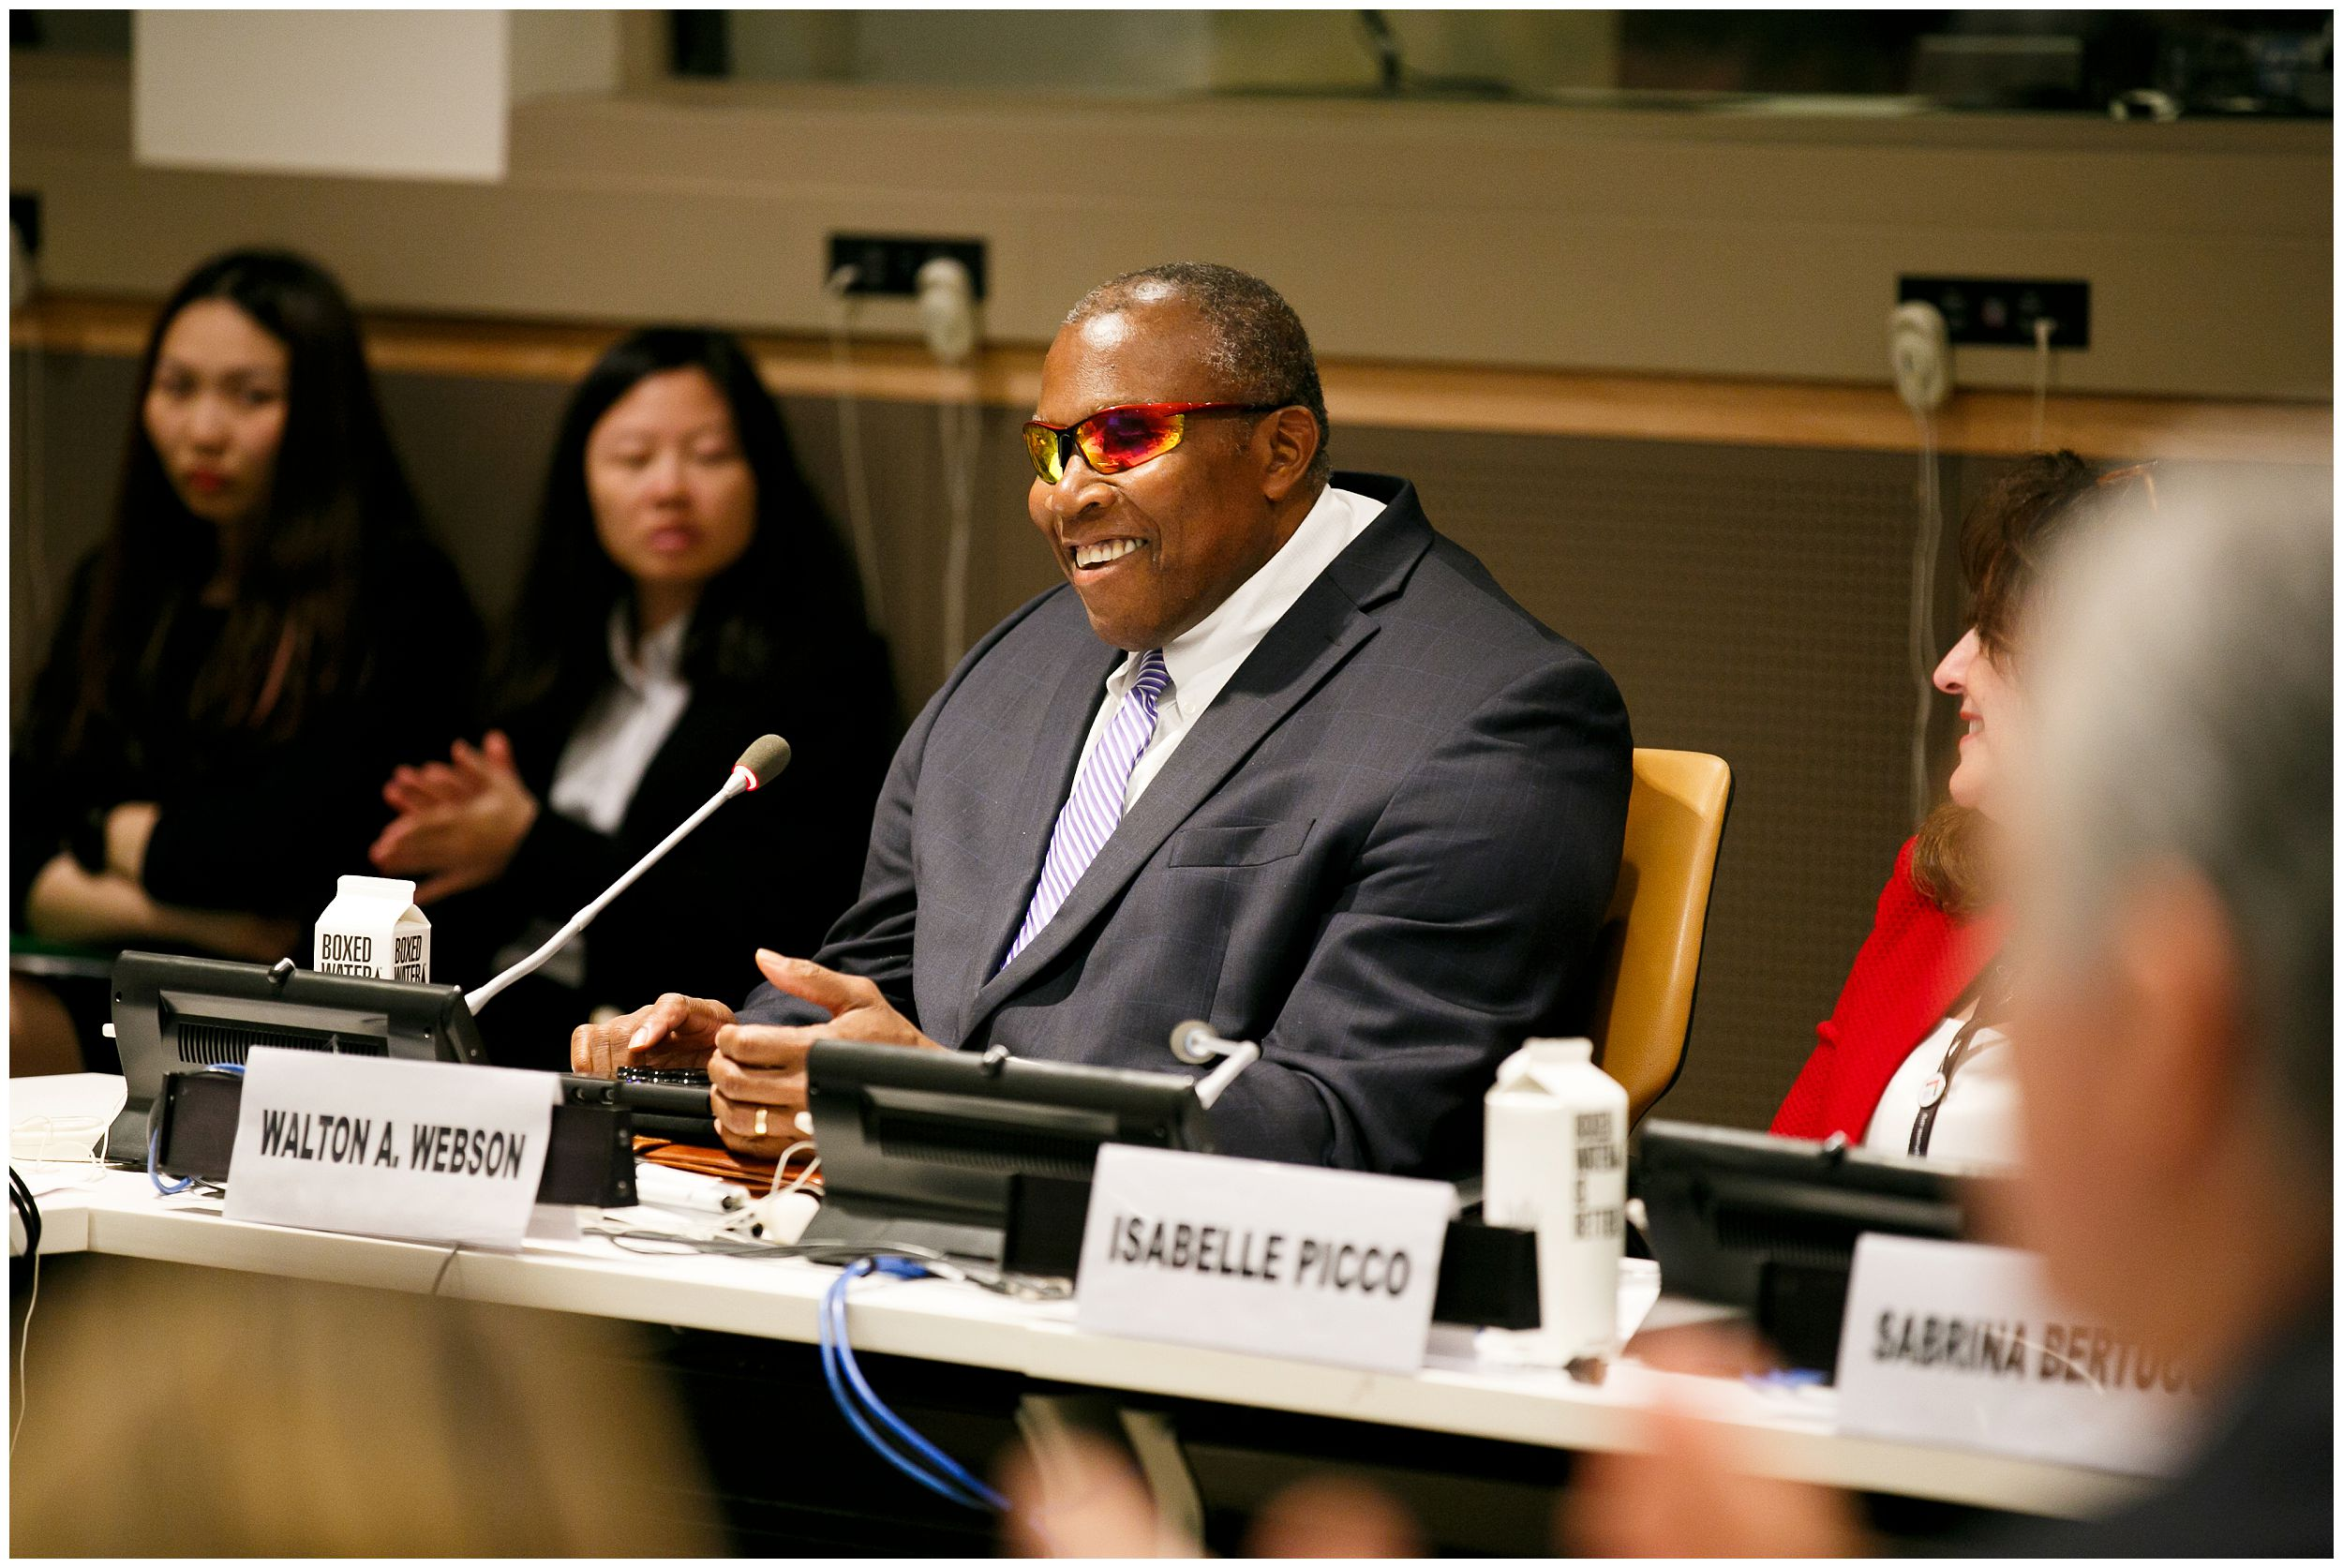 H.E. Mr. Walton Alfonso Webson, Ambassador, Permanent Mission of Antigua and Barbuda to the United Nations